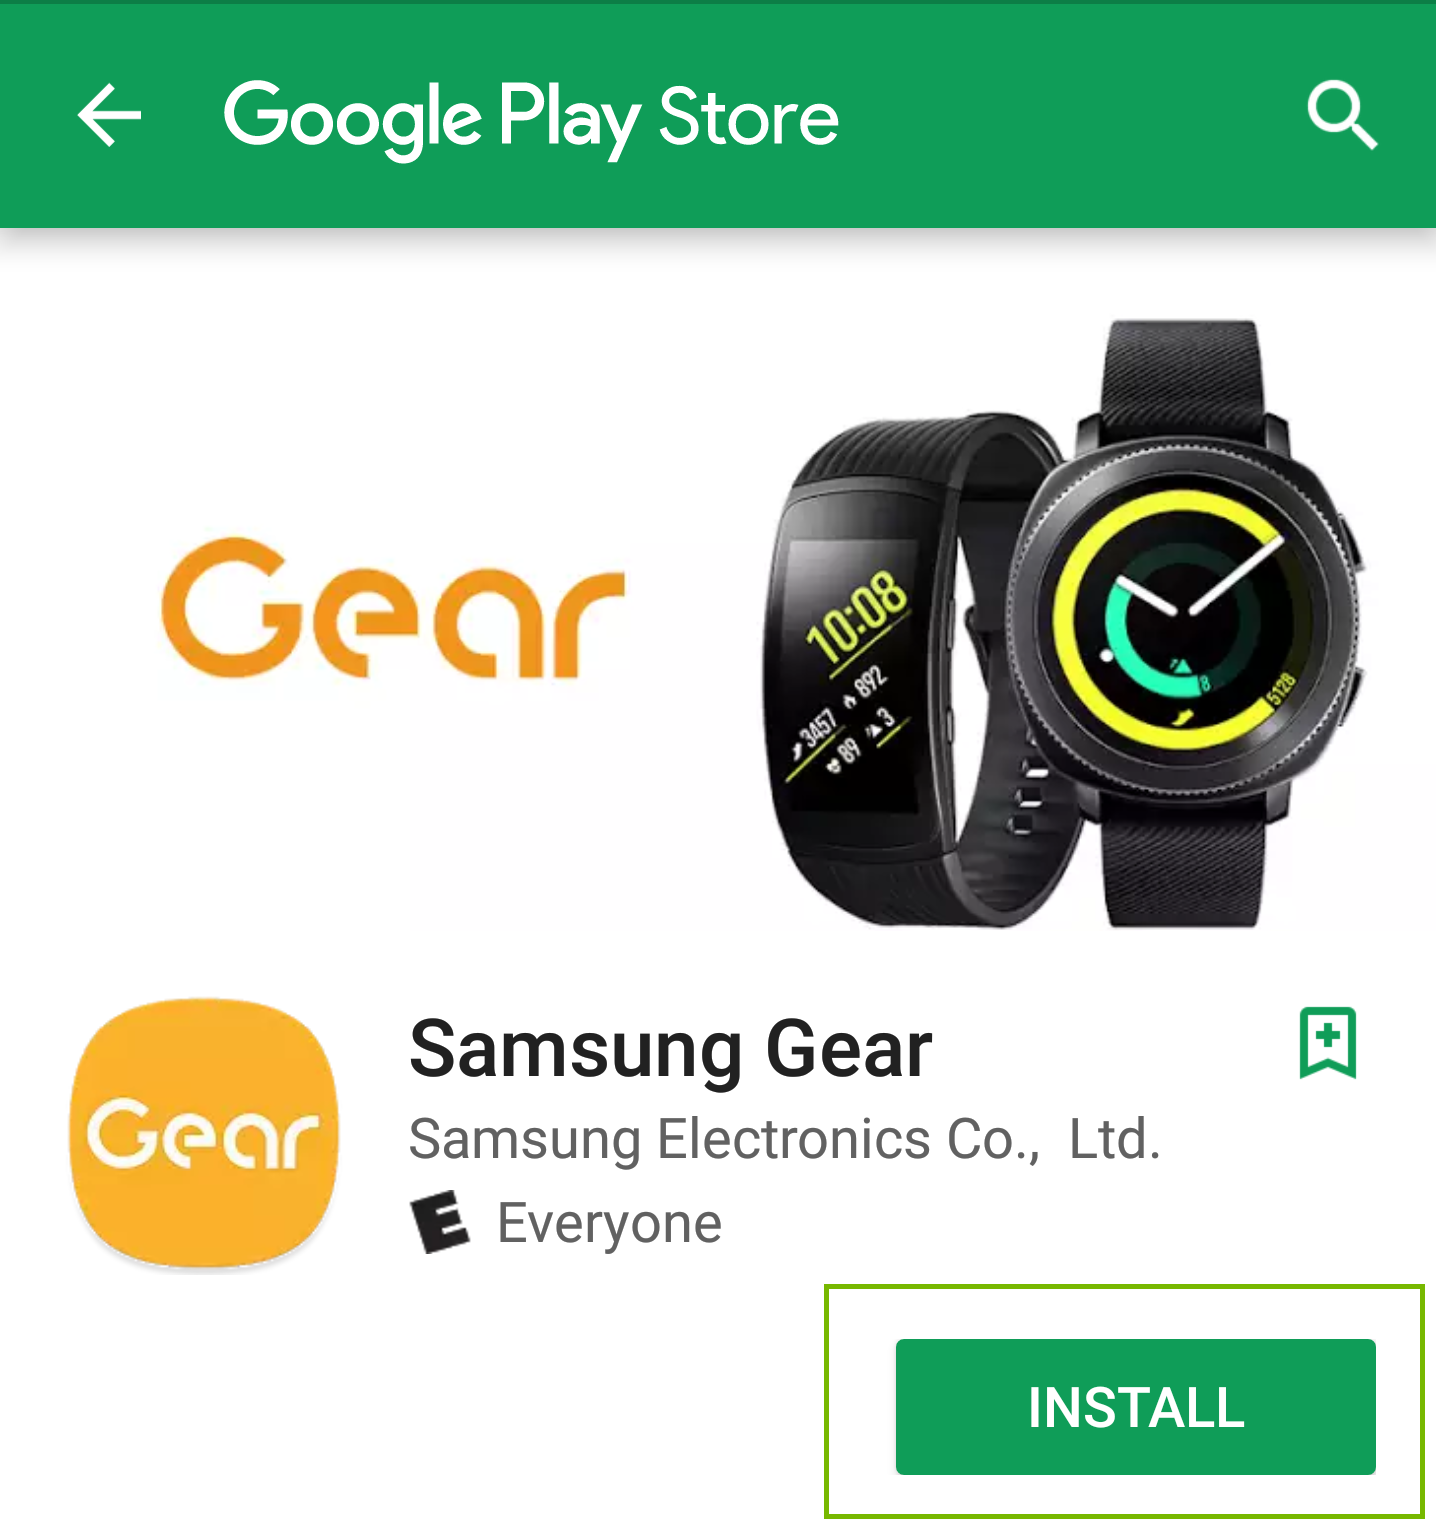 Gear Android Store page with install button highlighted